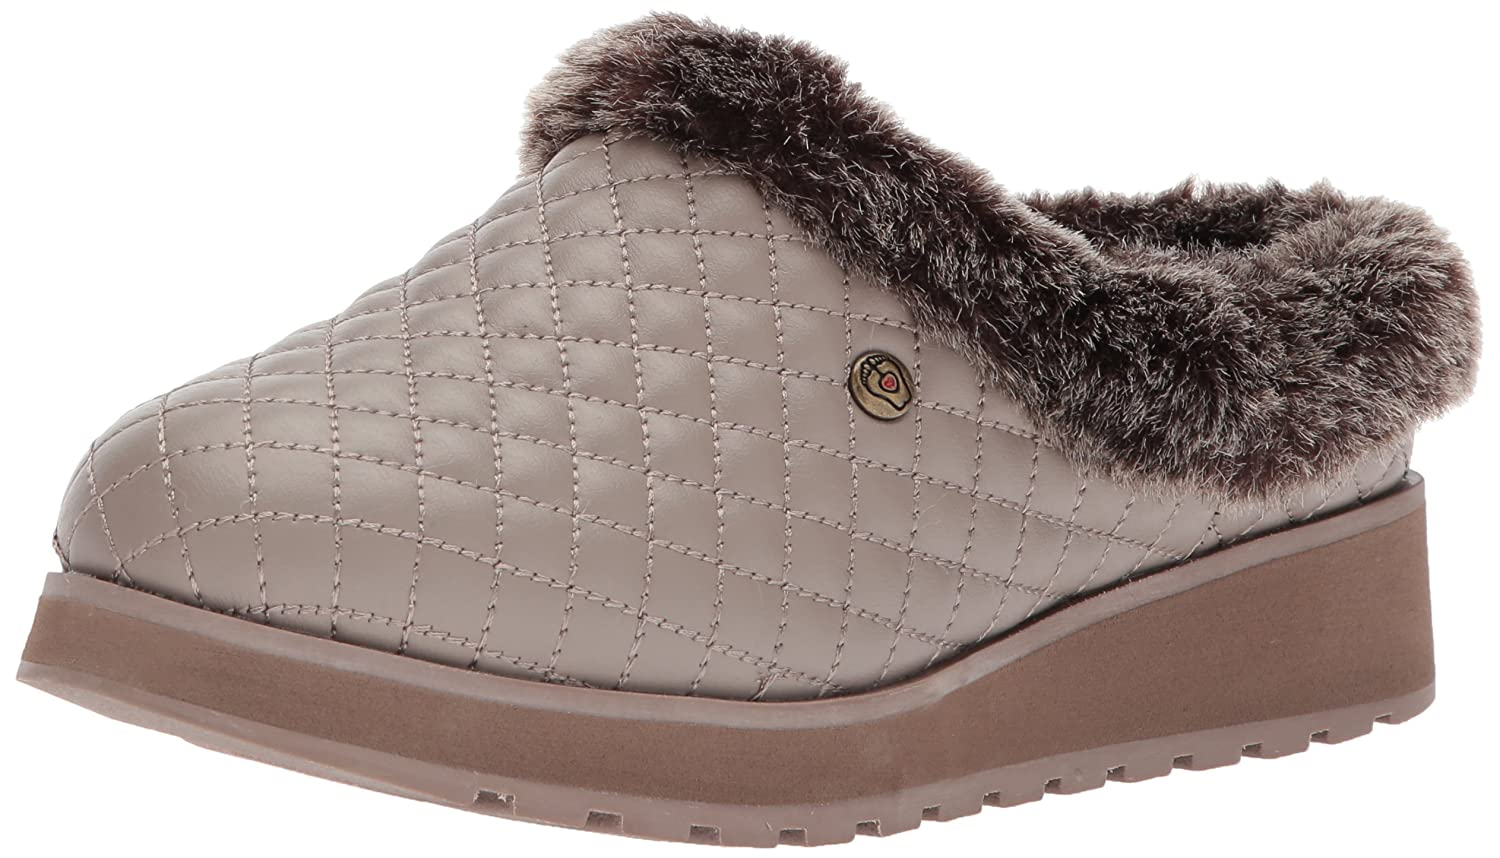 Skechers BOBS Women's Keepsakes High Quilted Clog